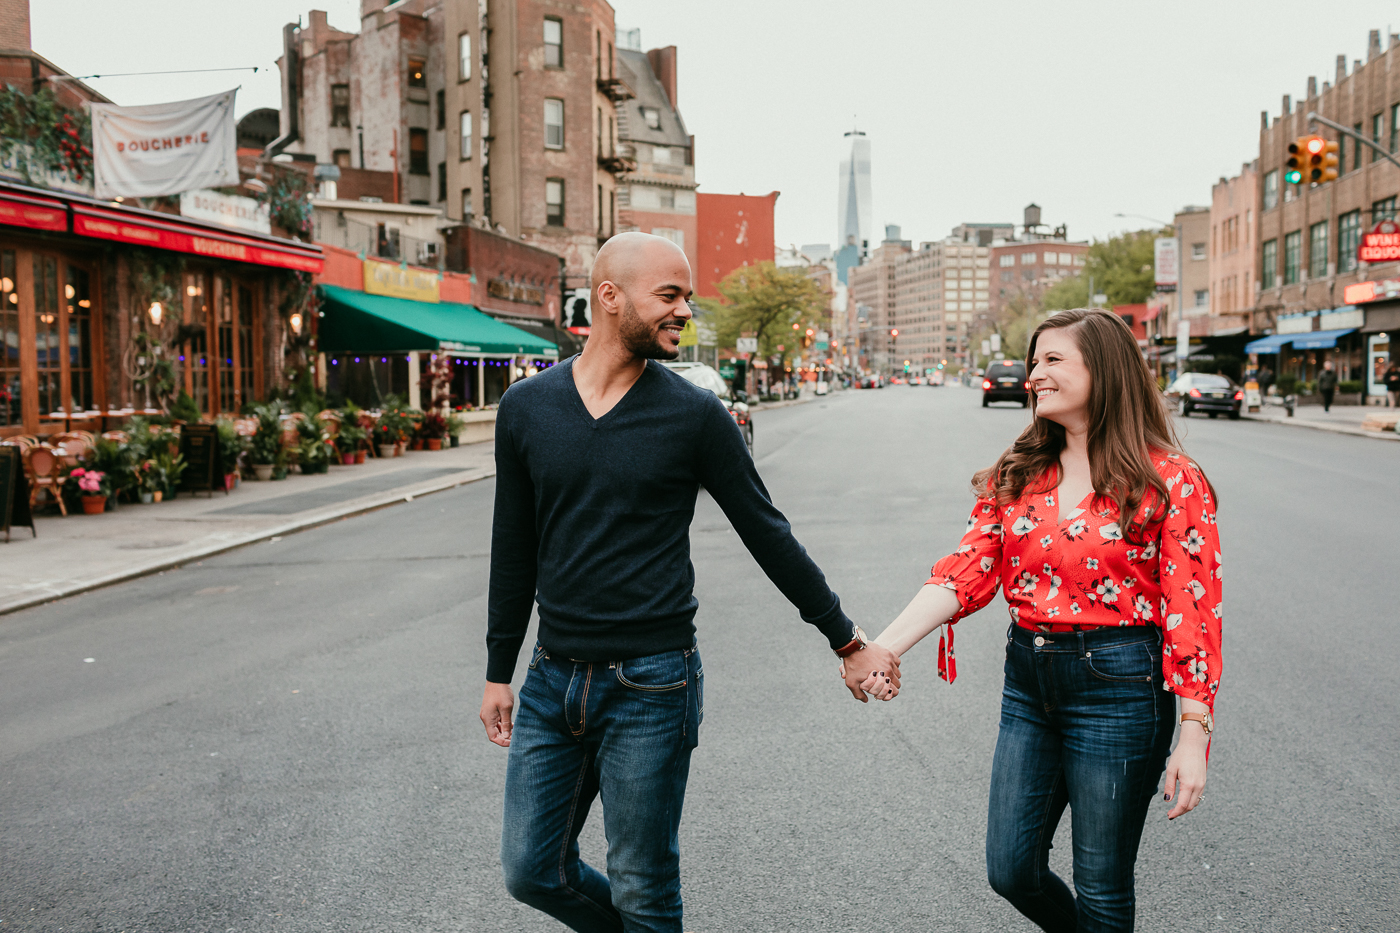 West-Village-Engagement-Photos-NYC-Wedding-Photographer-15.JPG